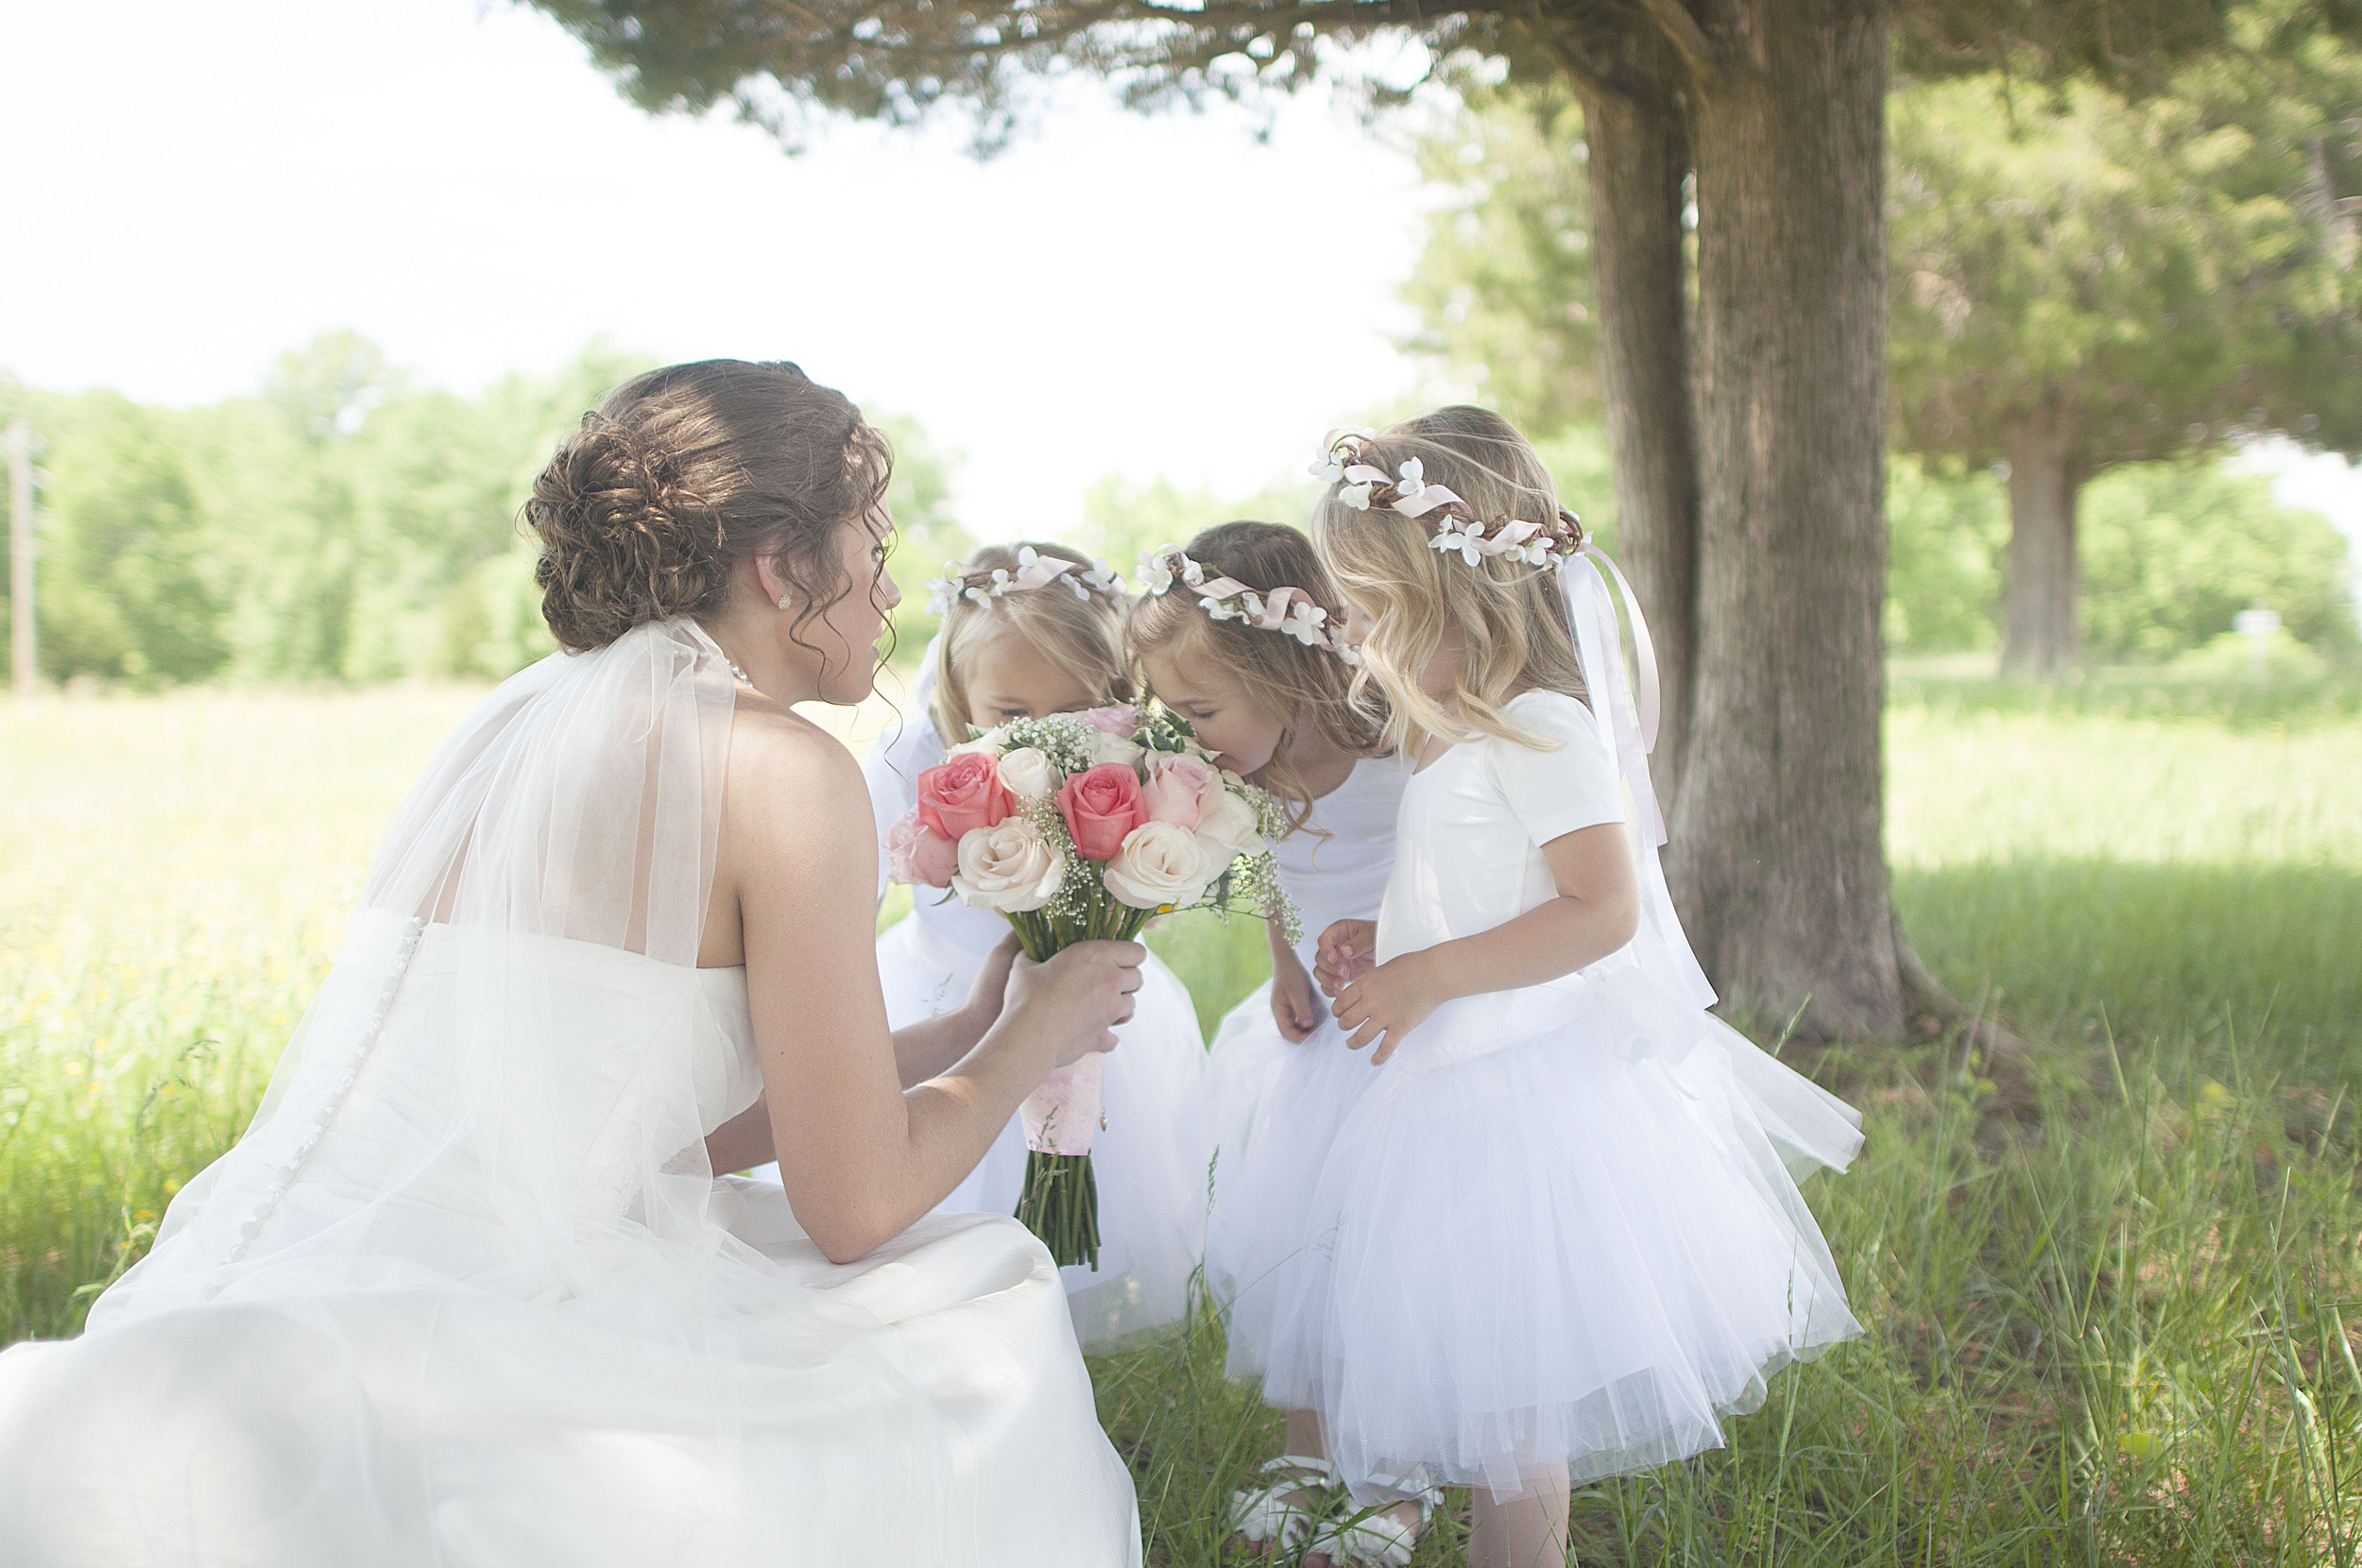 One of the sweetest, and one of my favorite sweet moments of the day!